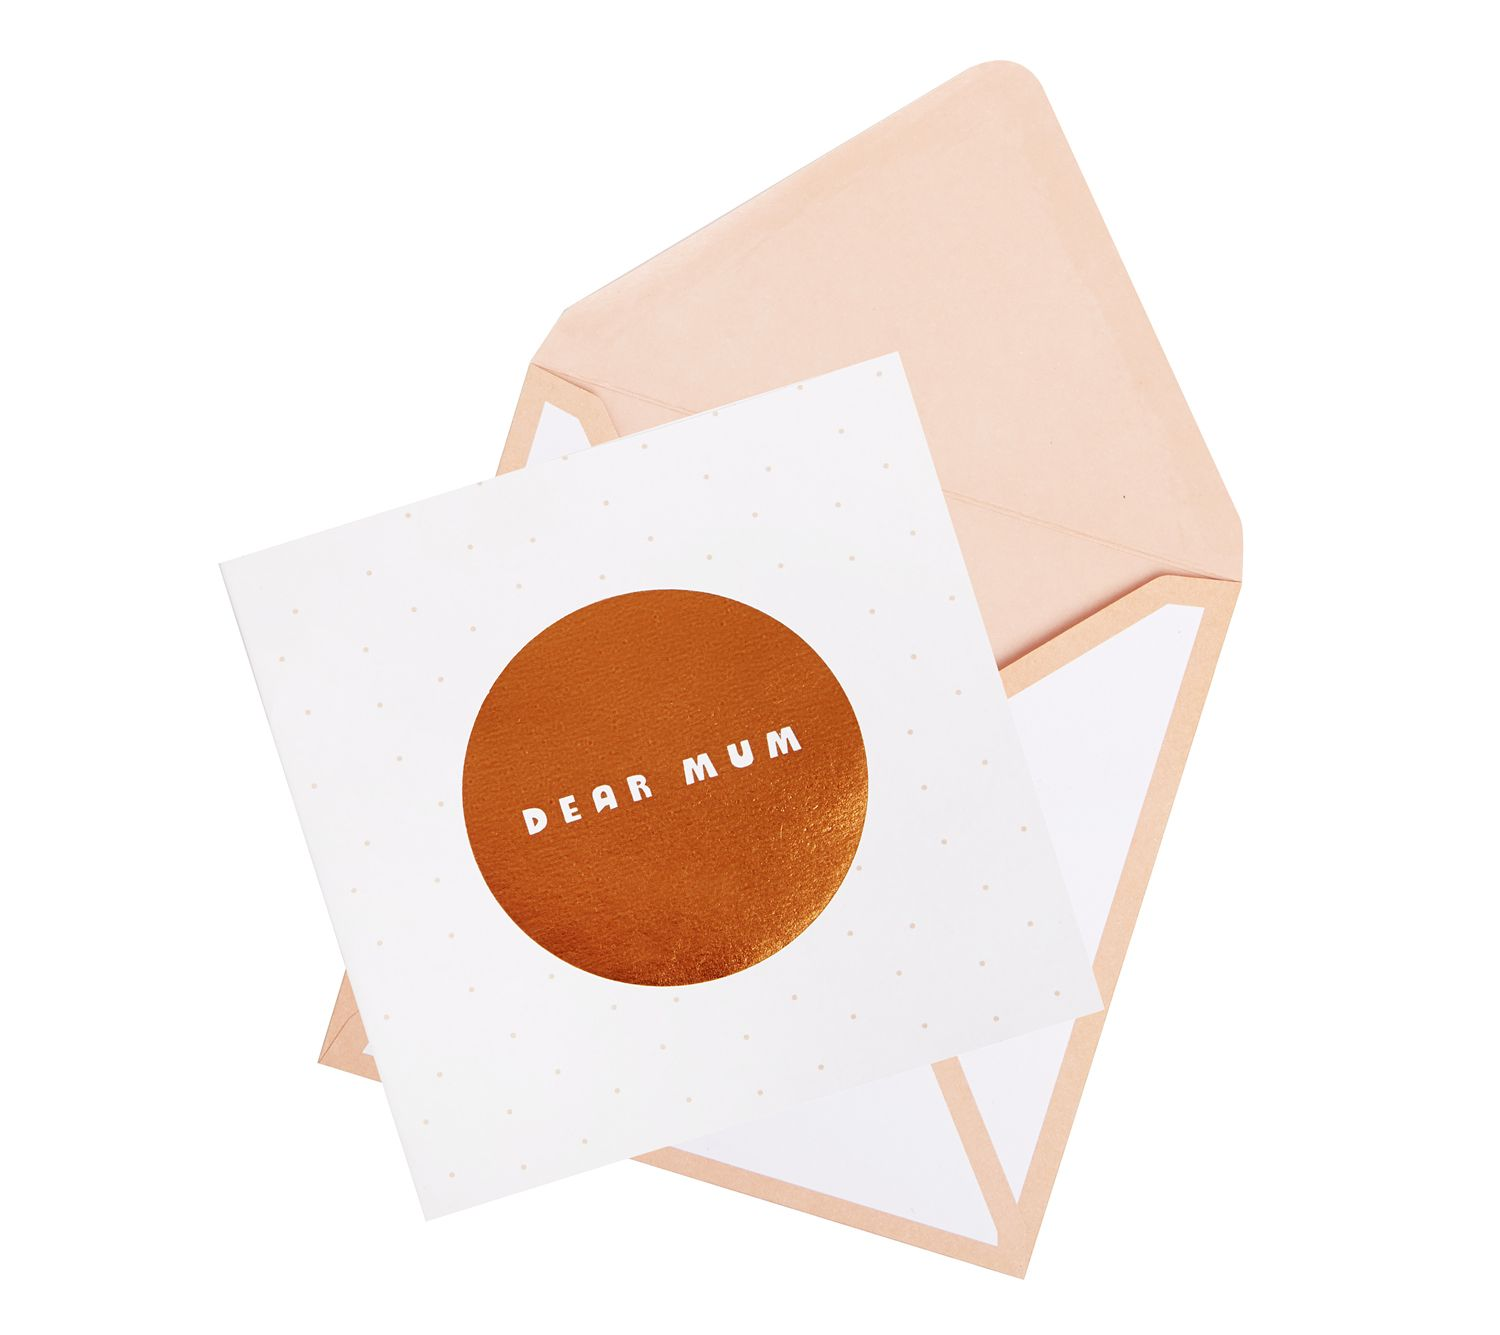 Treat your mom to this gorgeous copper foil pop up card this